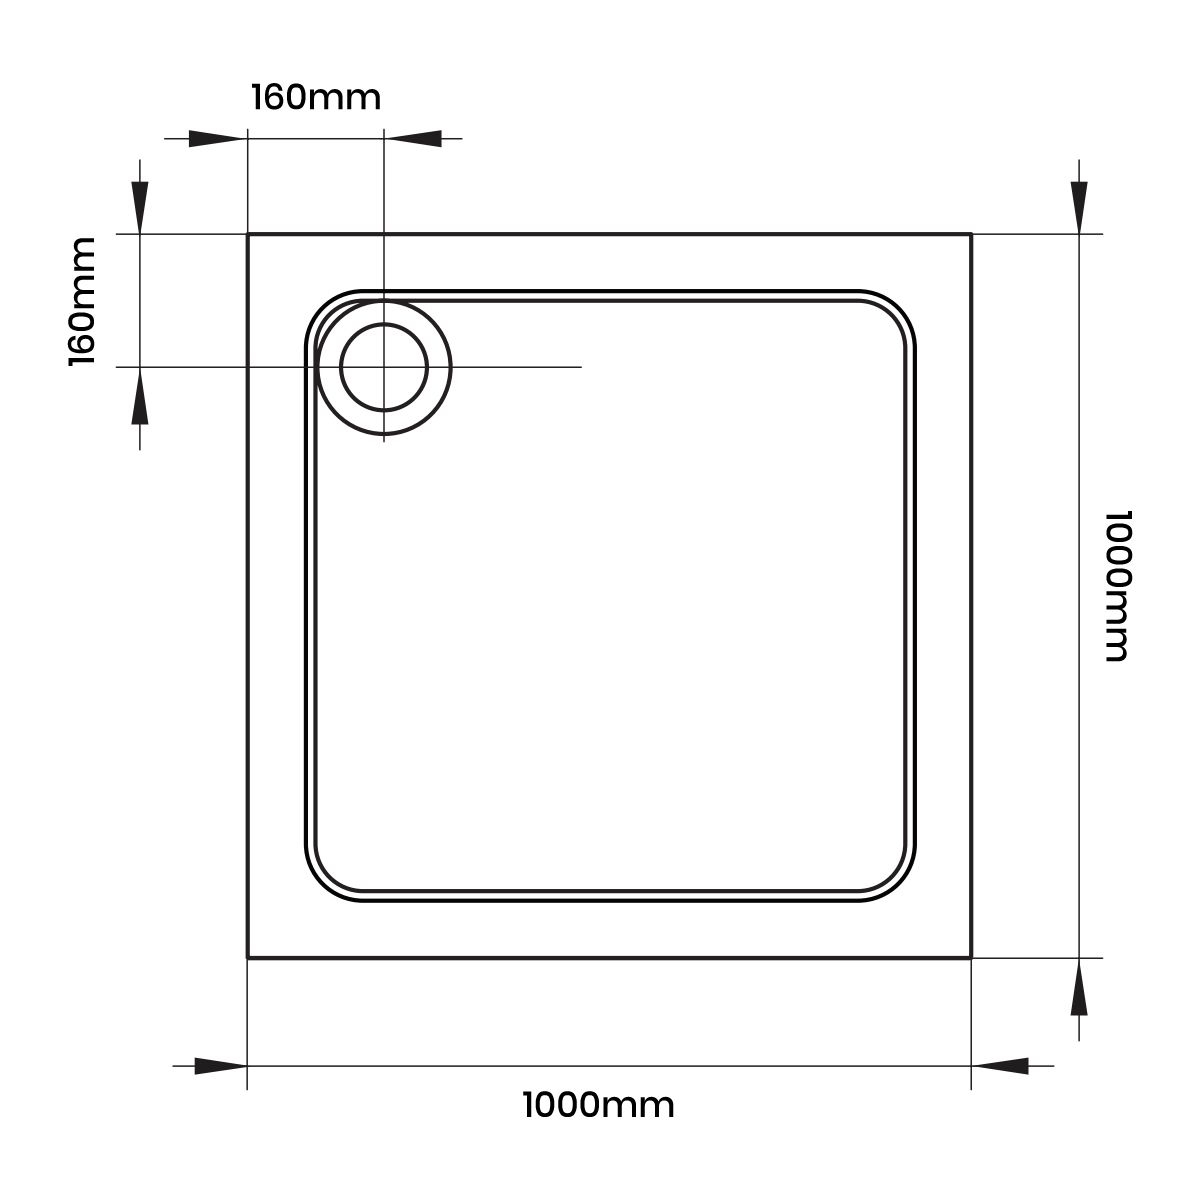 April Square Anti Slip Shower Tray 1000 x 1000 Line Drawing